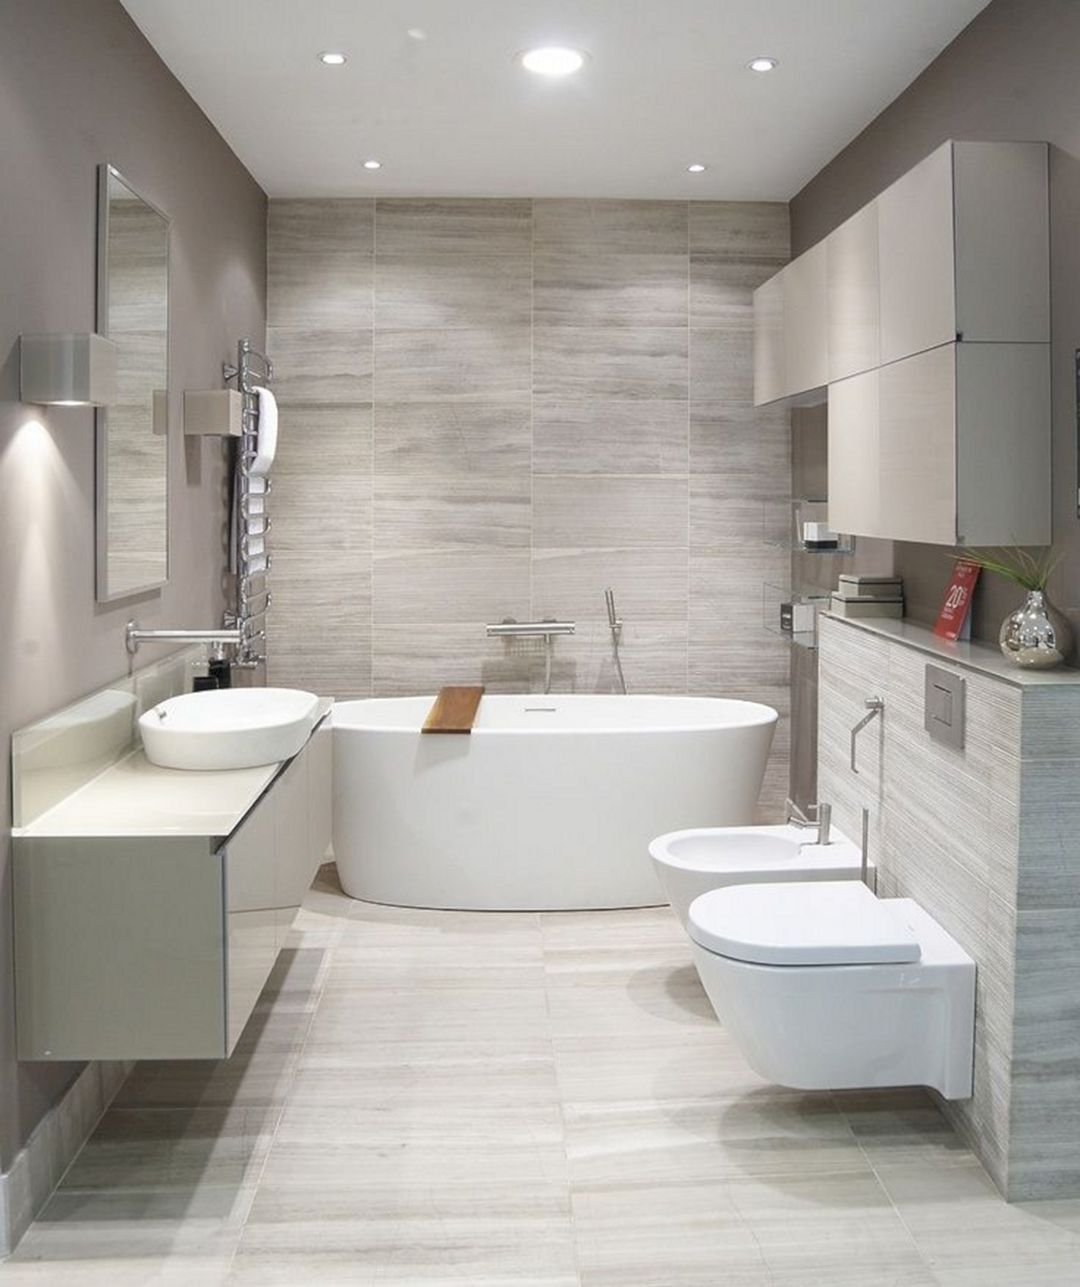 15 Most Beautiful Small Modern Bathroom Design Ideas For Low